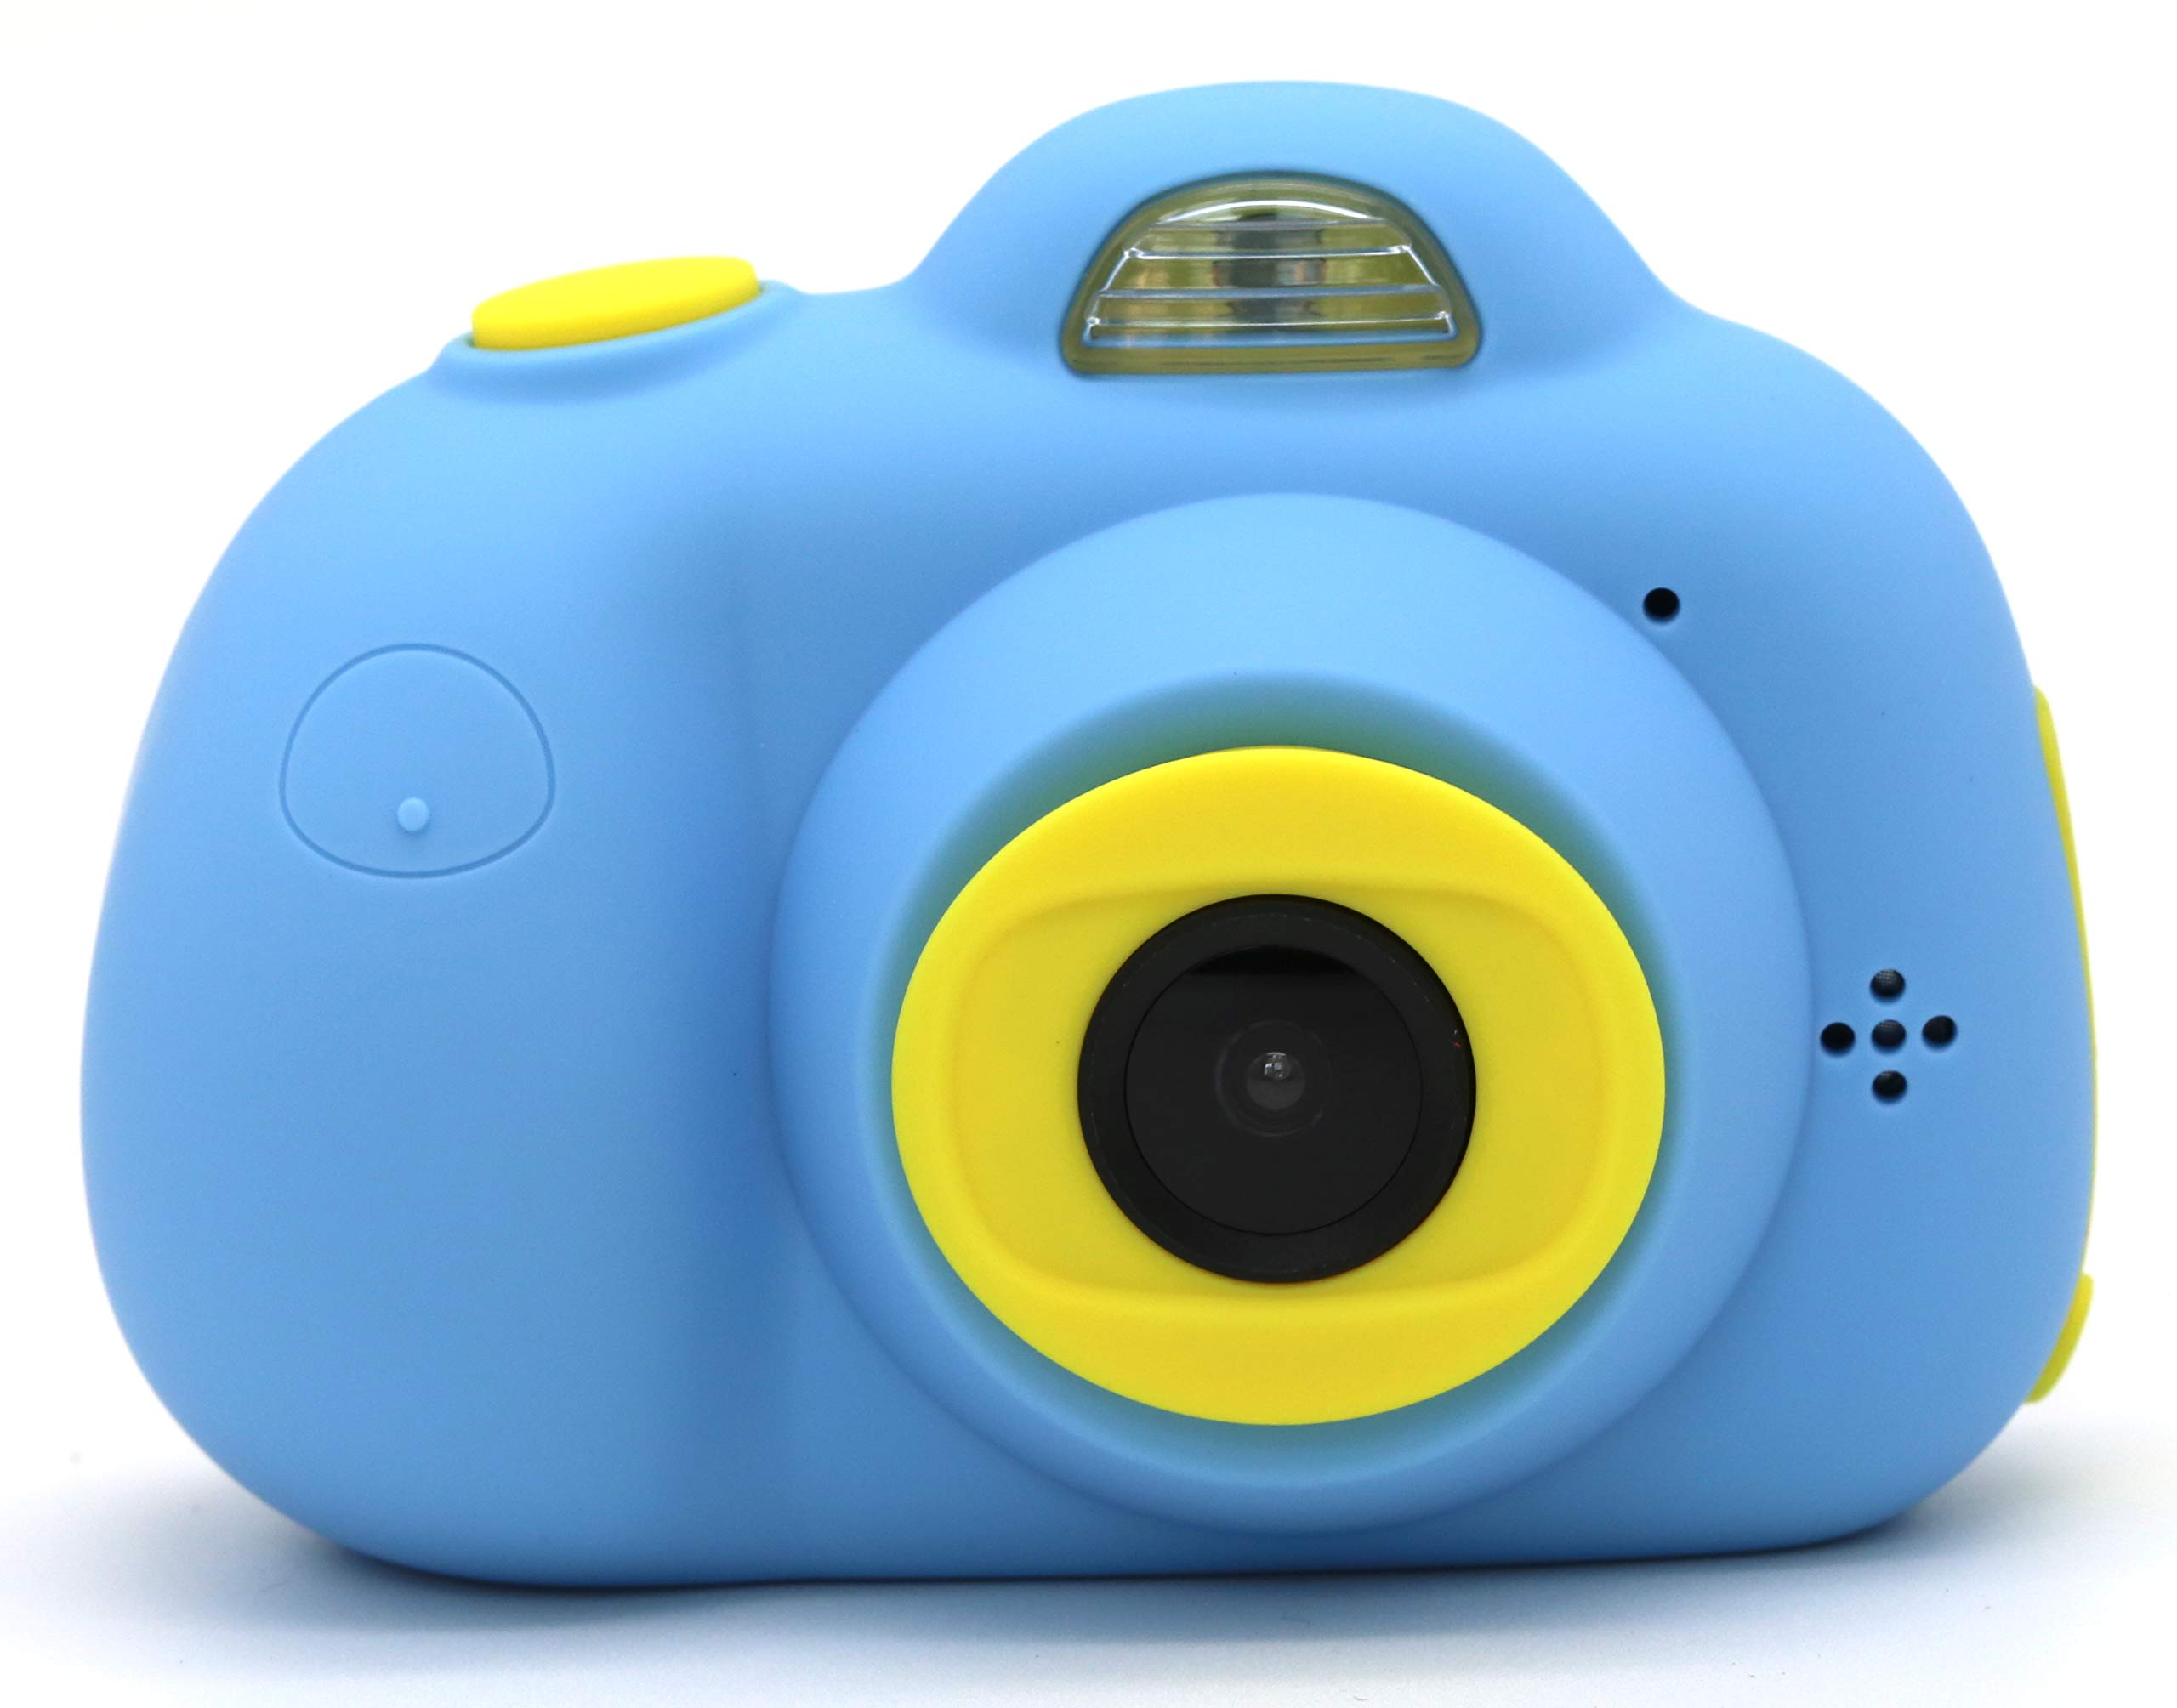 YOYOCOCO Camera for Kids,Film Camera Selfie Camera with Soft Silicone Shell for Outdoor Play,Kids Camera Toy Camera for 3-10 Year Old Girls and Boys(16GB TF Card Included)(Blue)